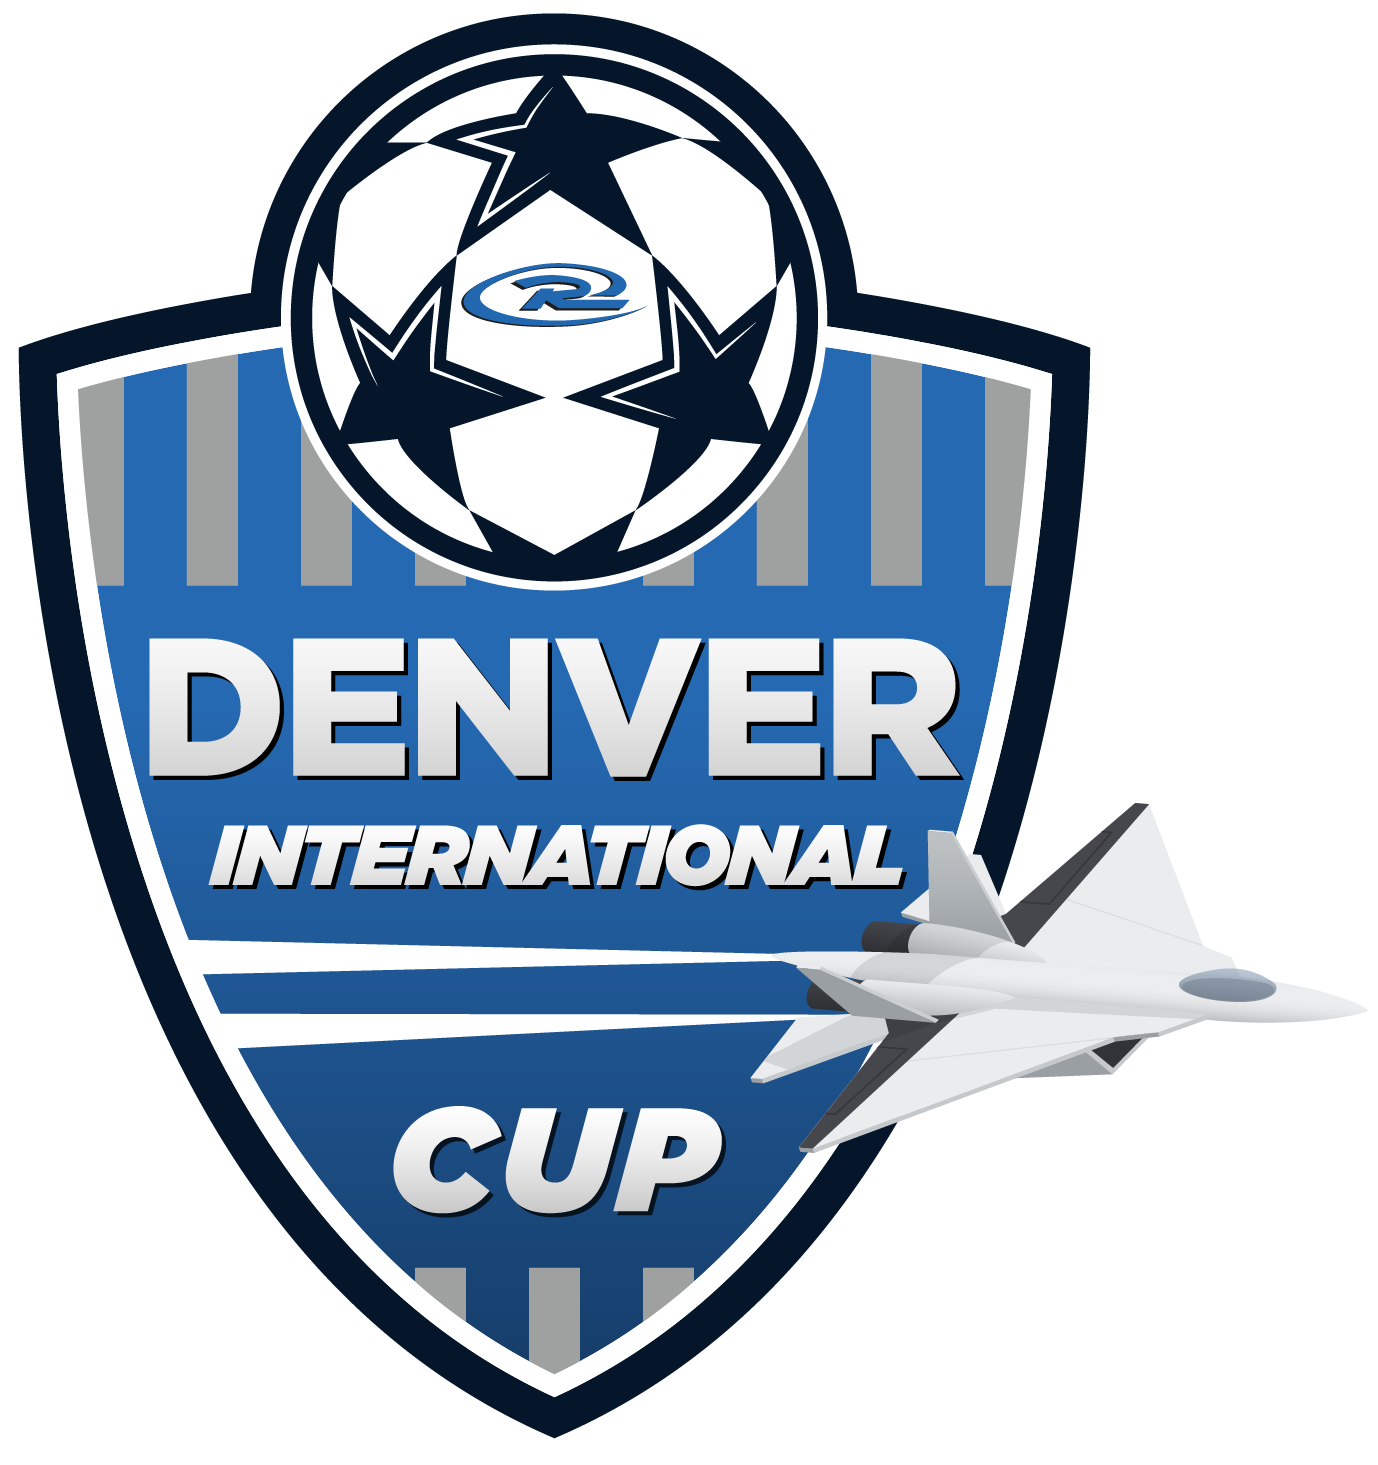 Denver-International-Cup